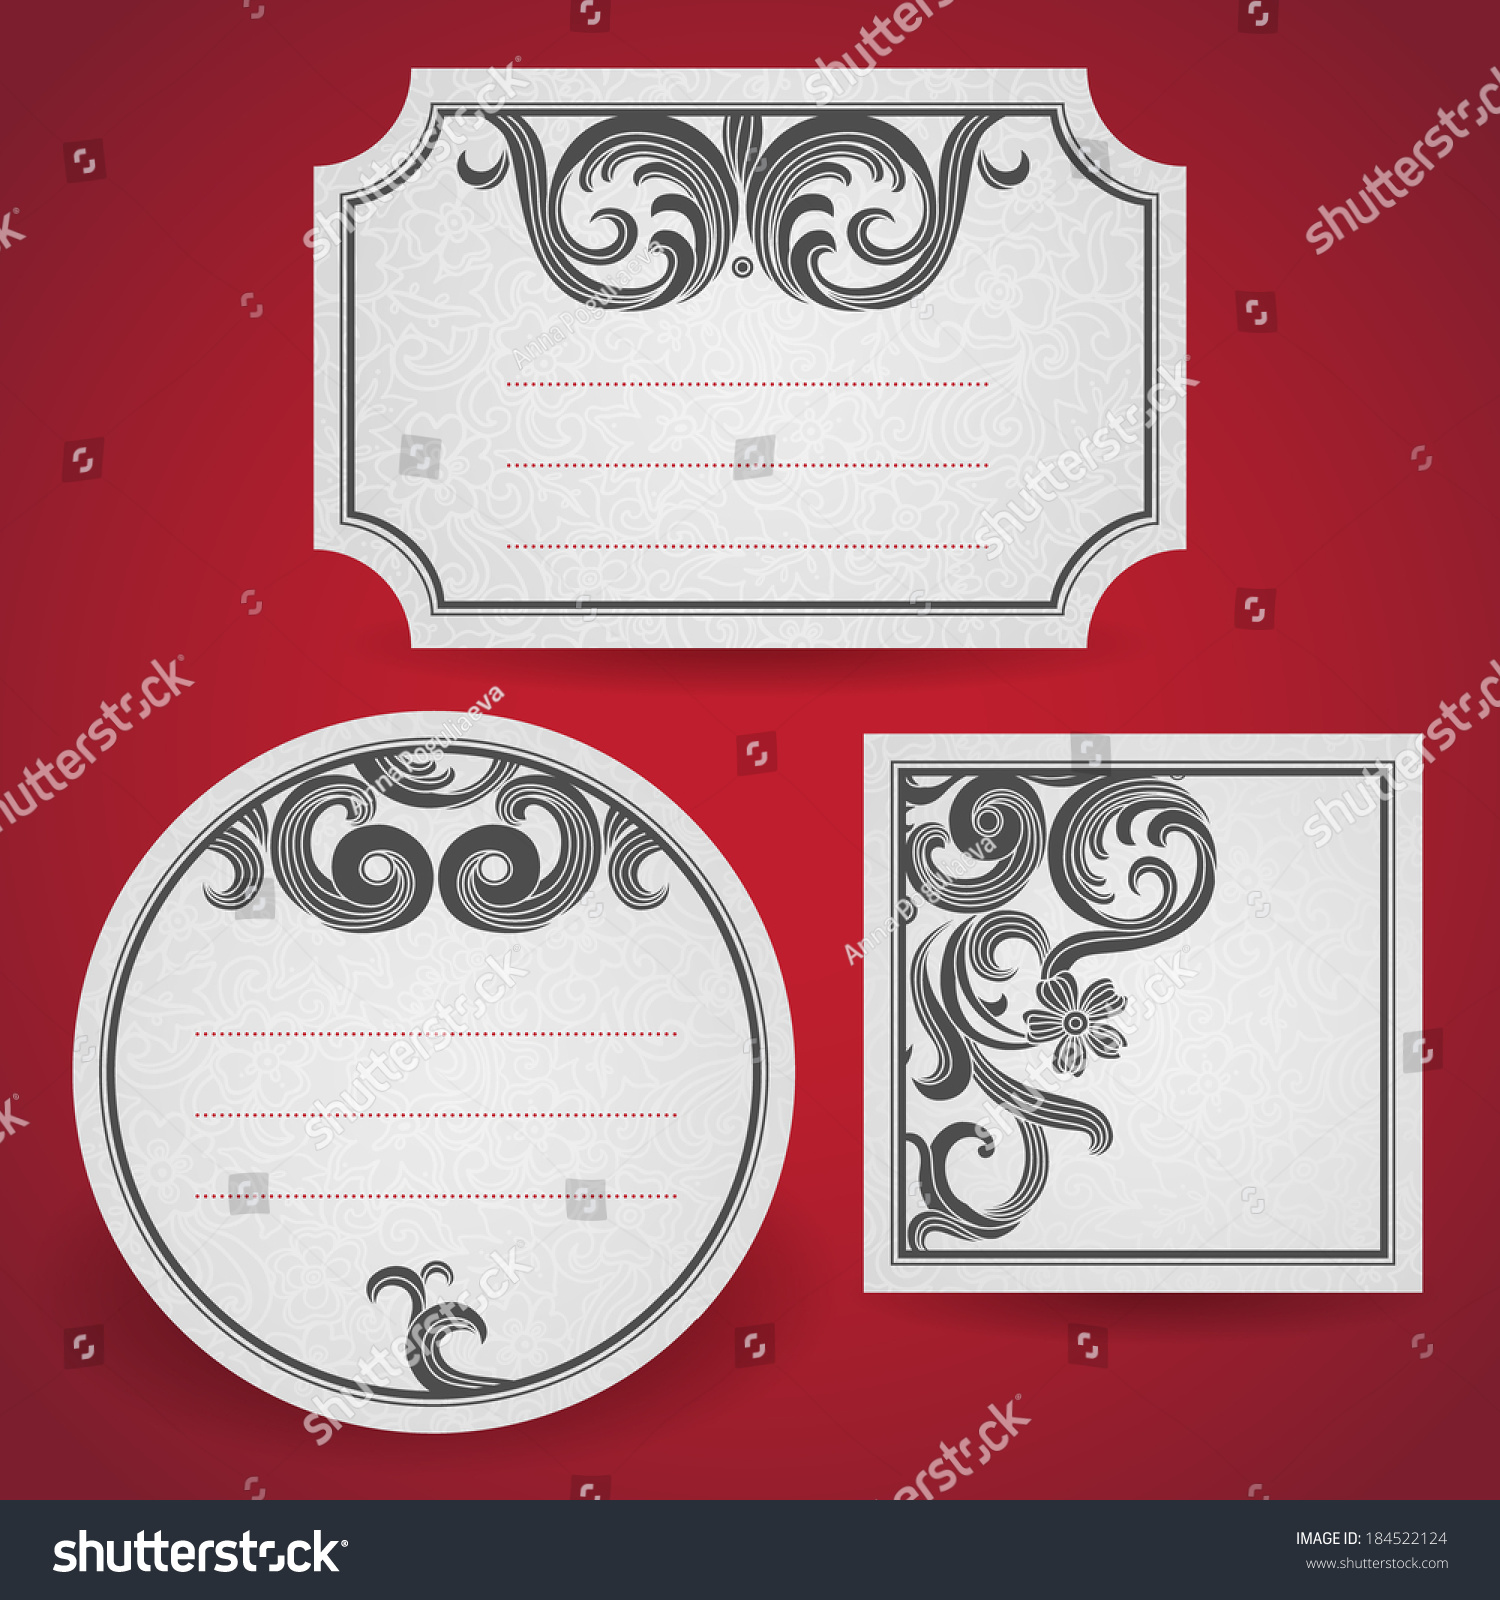 Cards Black Curls On Scroll Work Stock Vector (Royalty Free ...